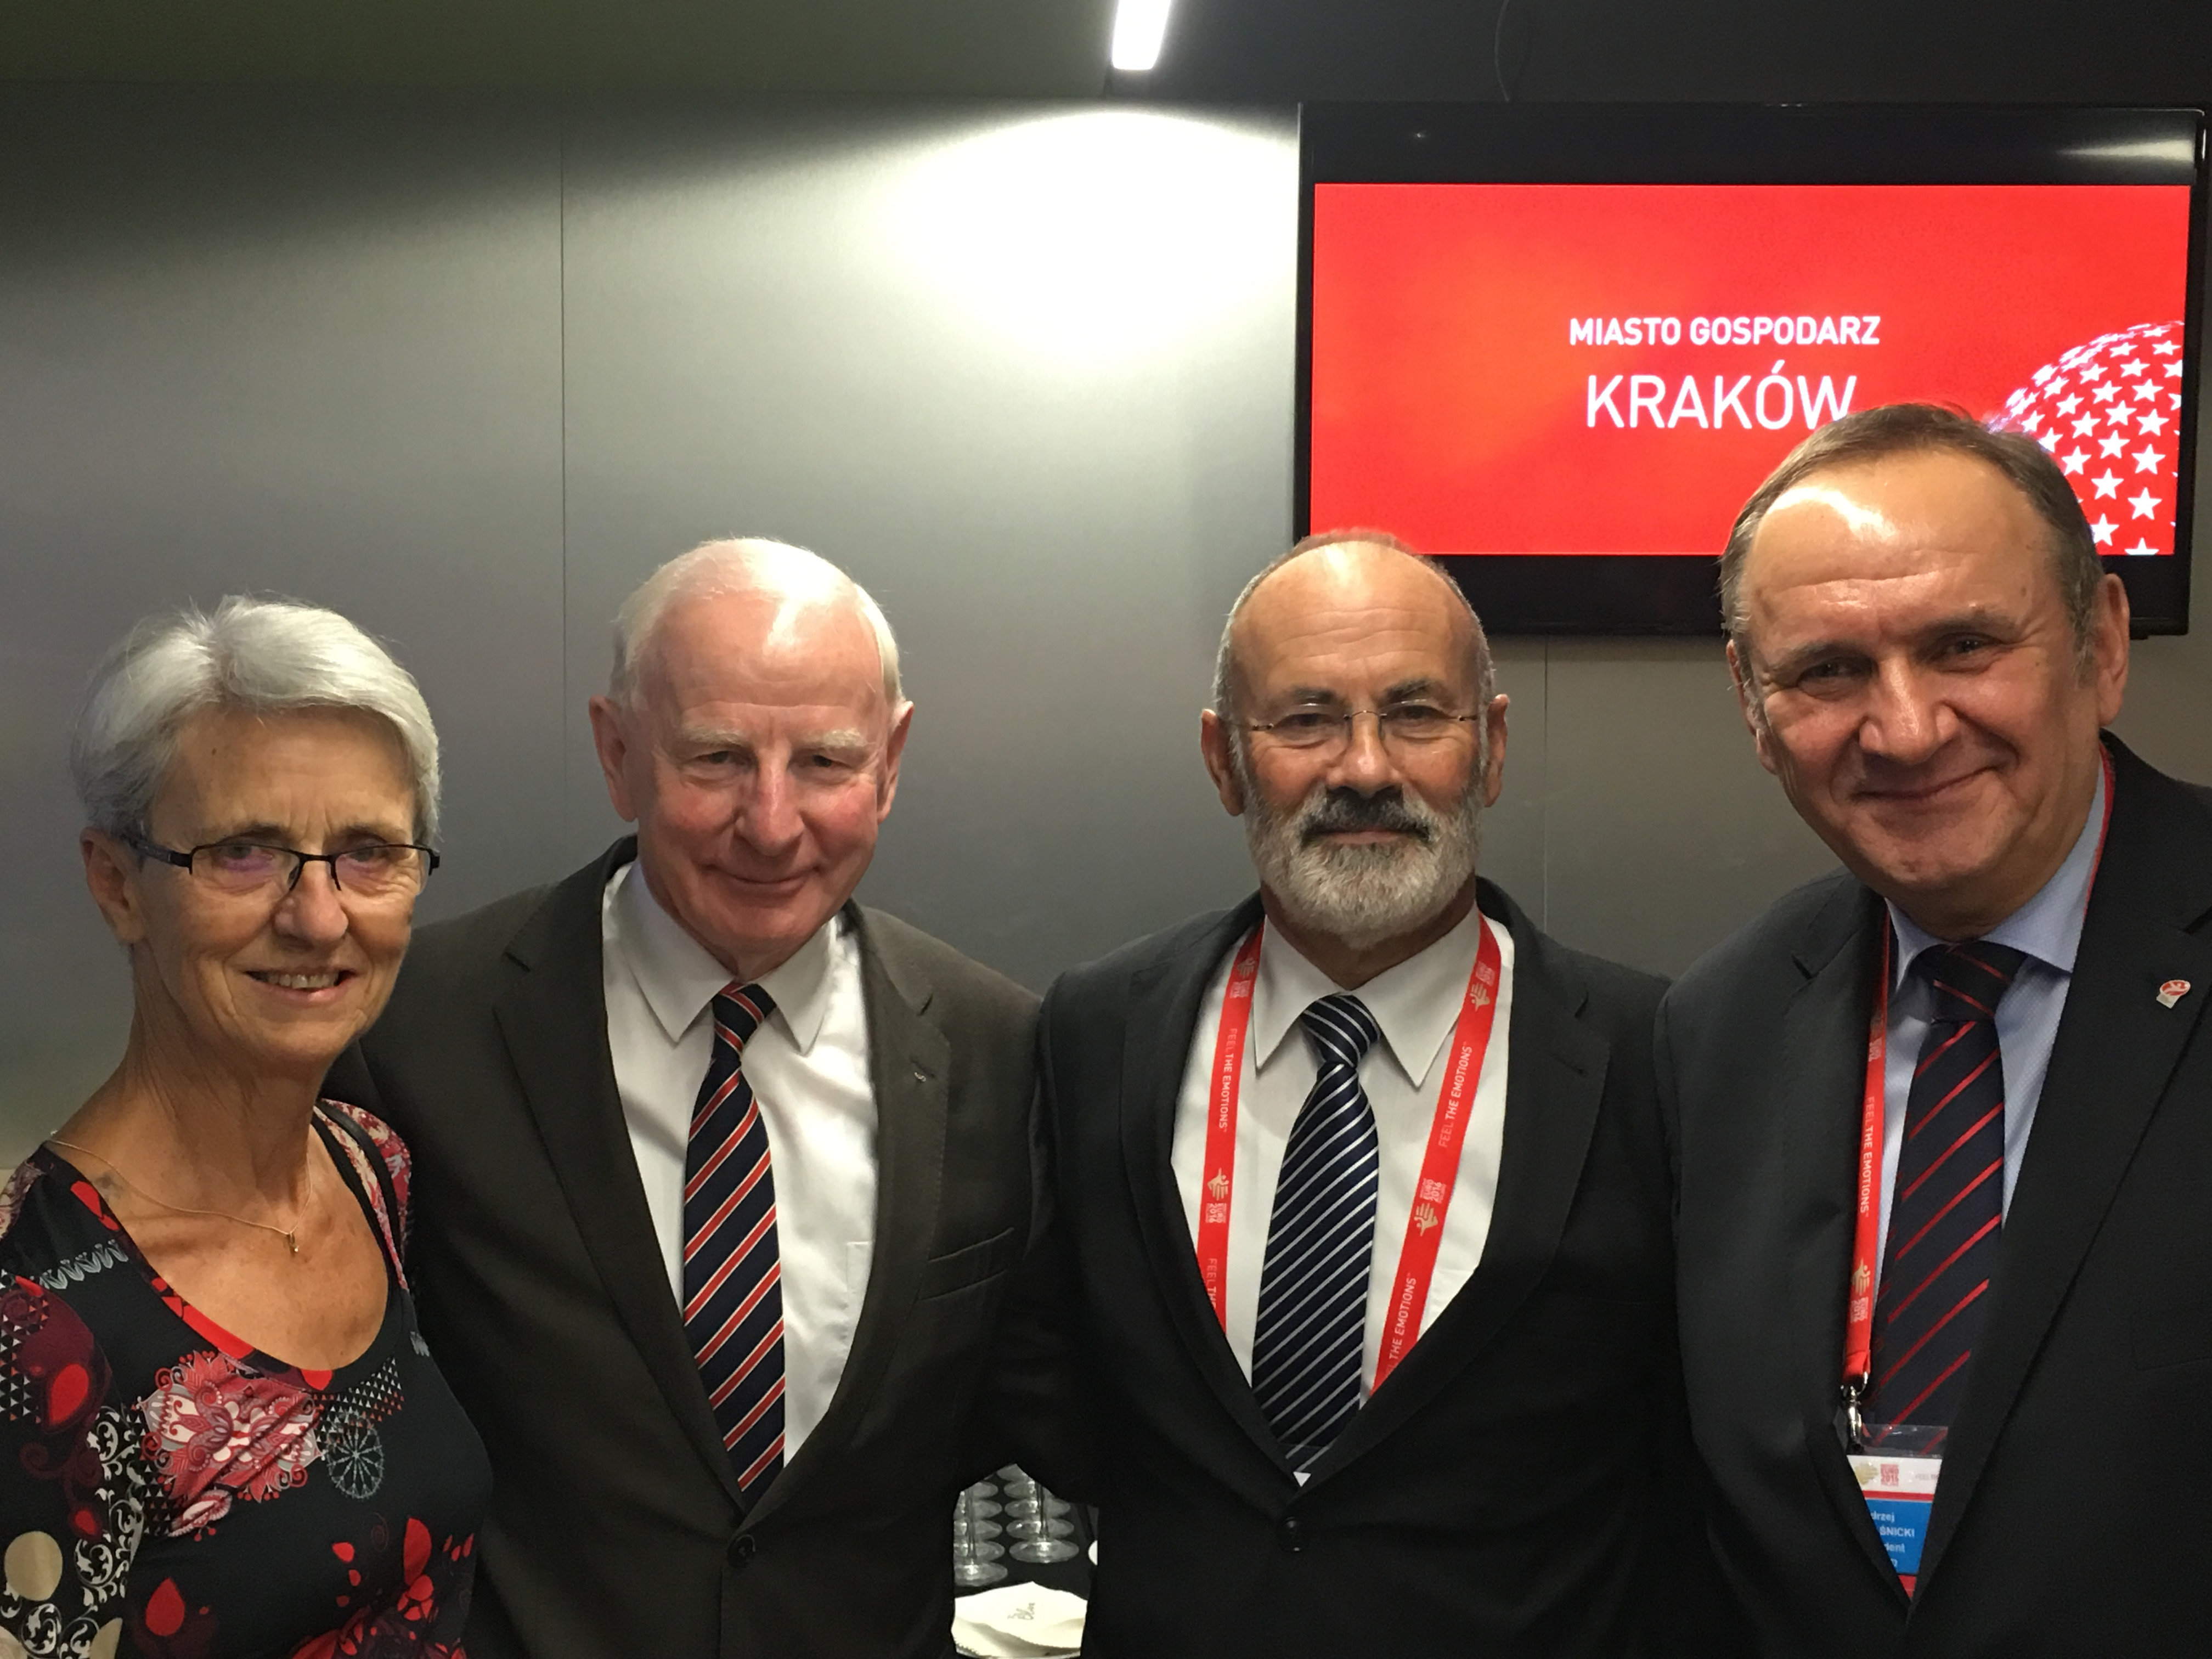 Pat Hickey with the President of NOC of Poland Andrzej Krasnicki and the President of European Handball Federation Jean Brihault  and his wife